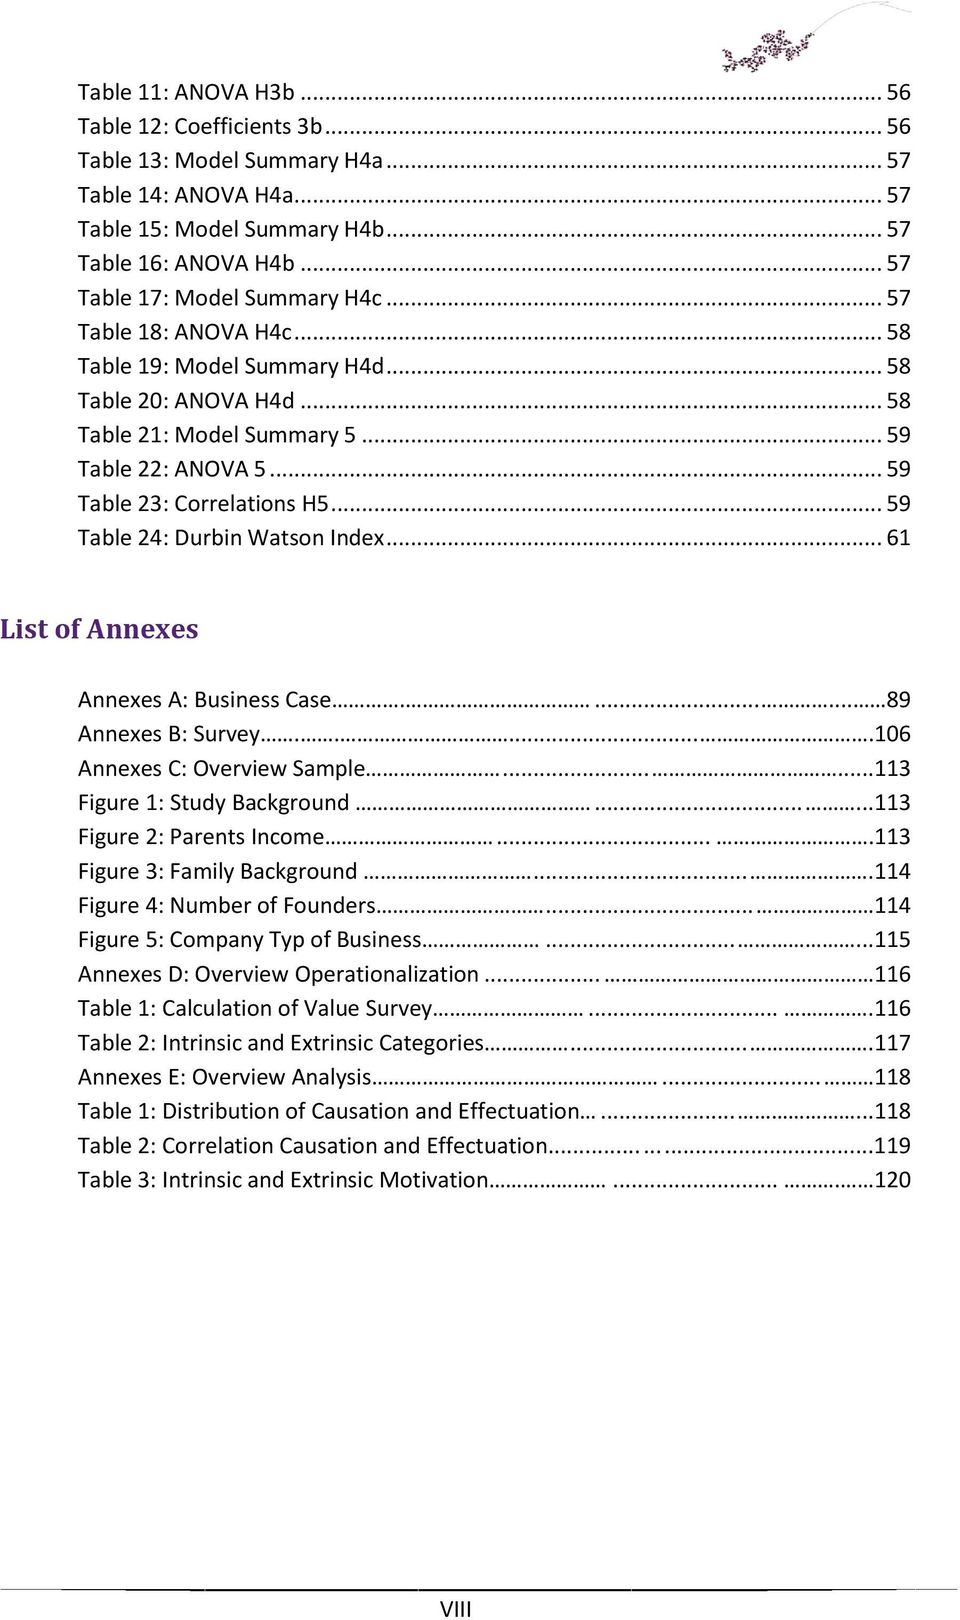 .. 59 Table 23: Correlations H5... 59 Table 24: Durbin Watson Index... 61 List of Annexes Annexes A: Business Case....... 89 Annexes B: Survey......106 Annexes C: Overview Sample.